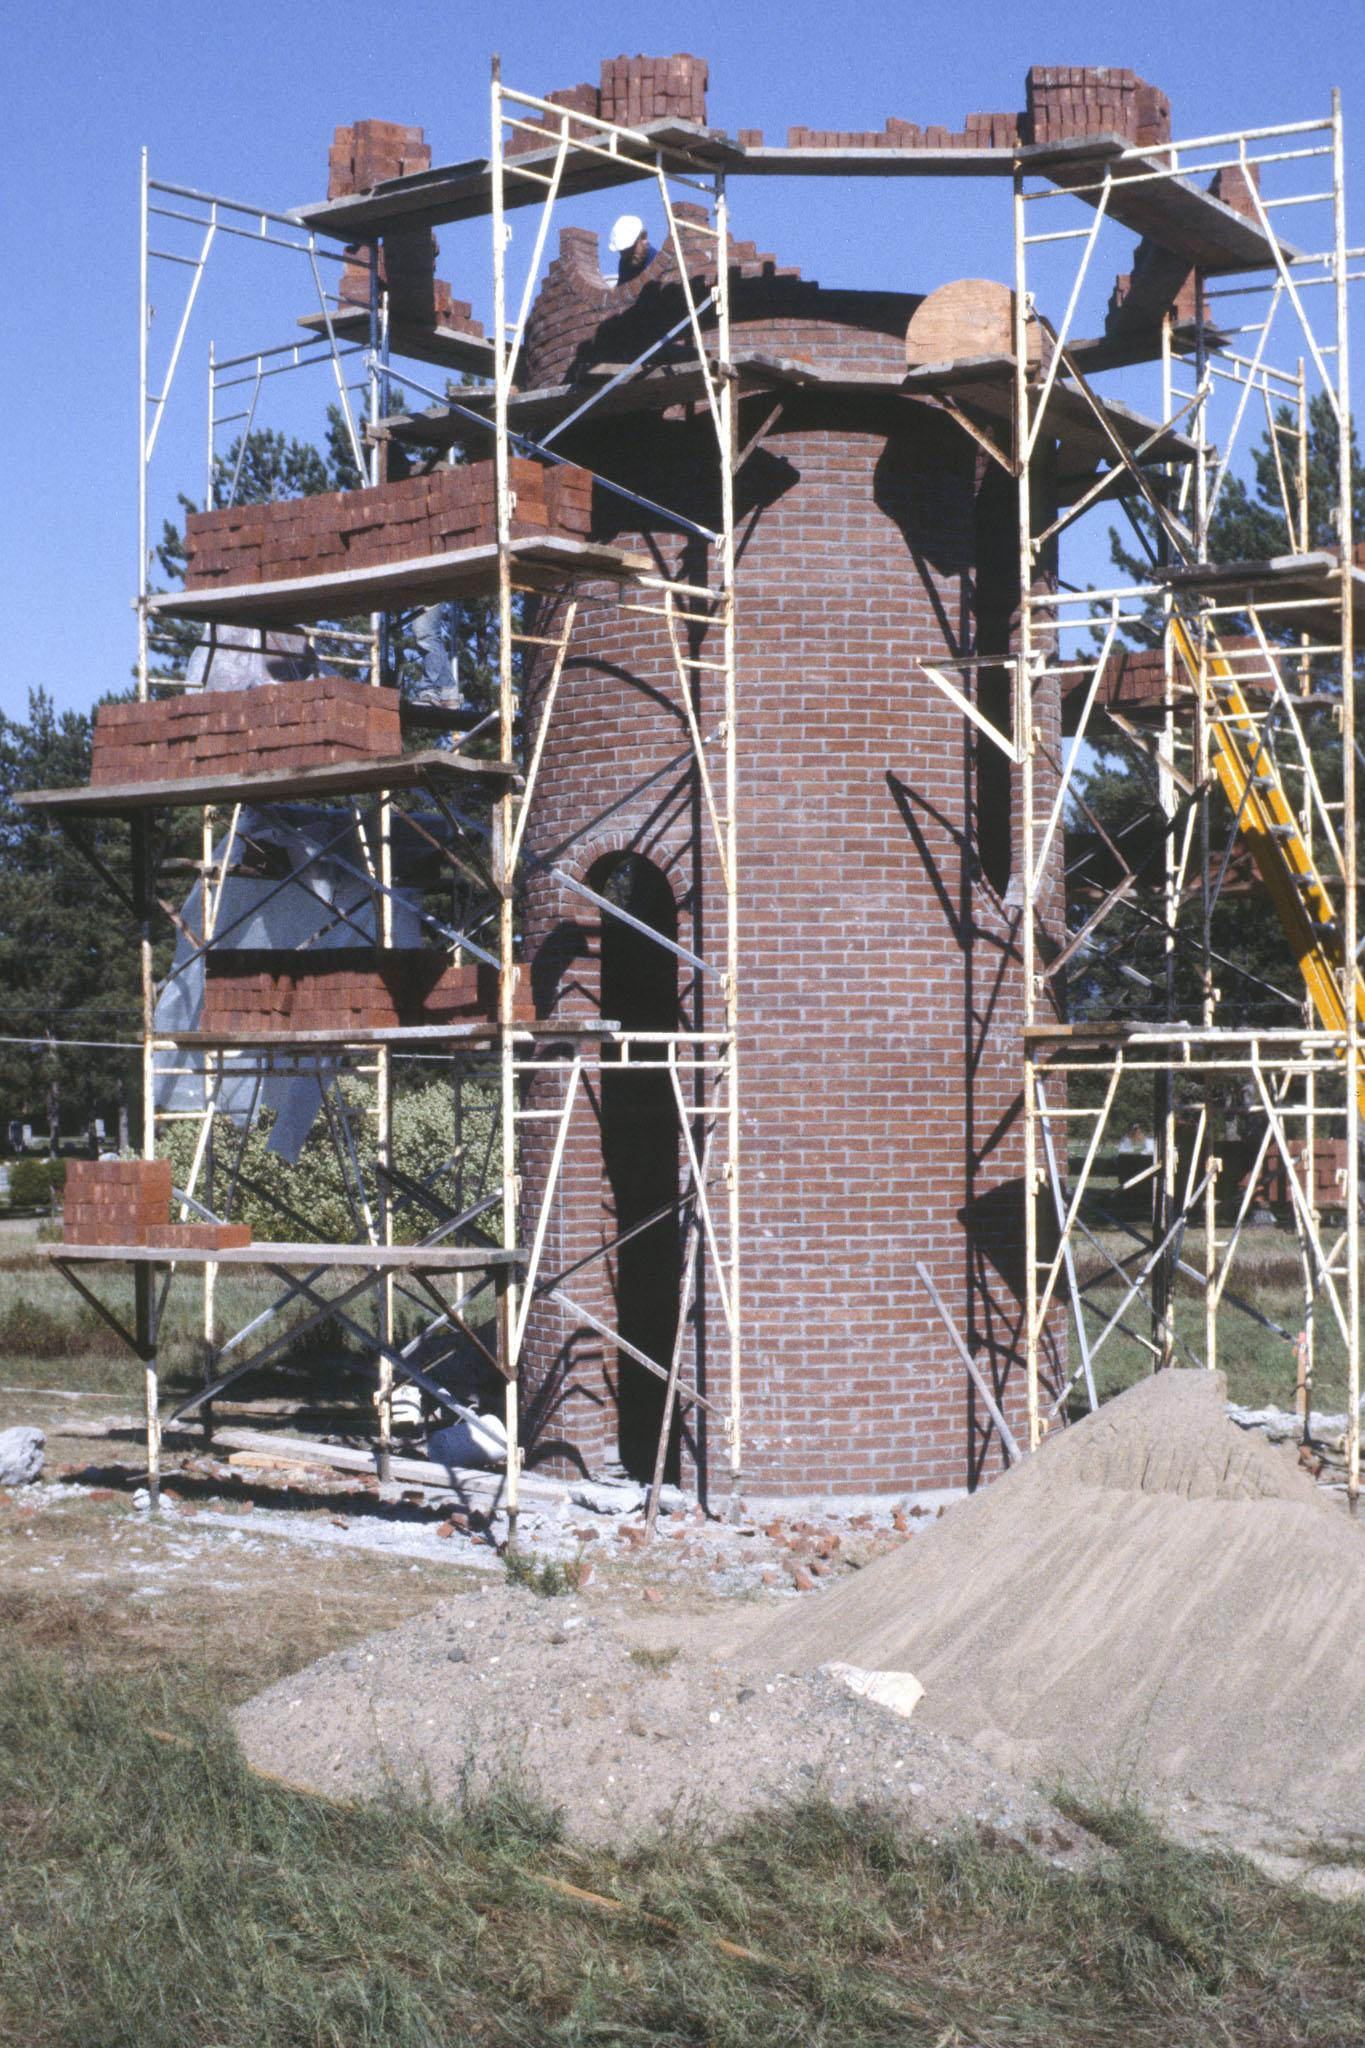 Construction showing scaffolding around a large circular tower made of brick